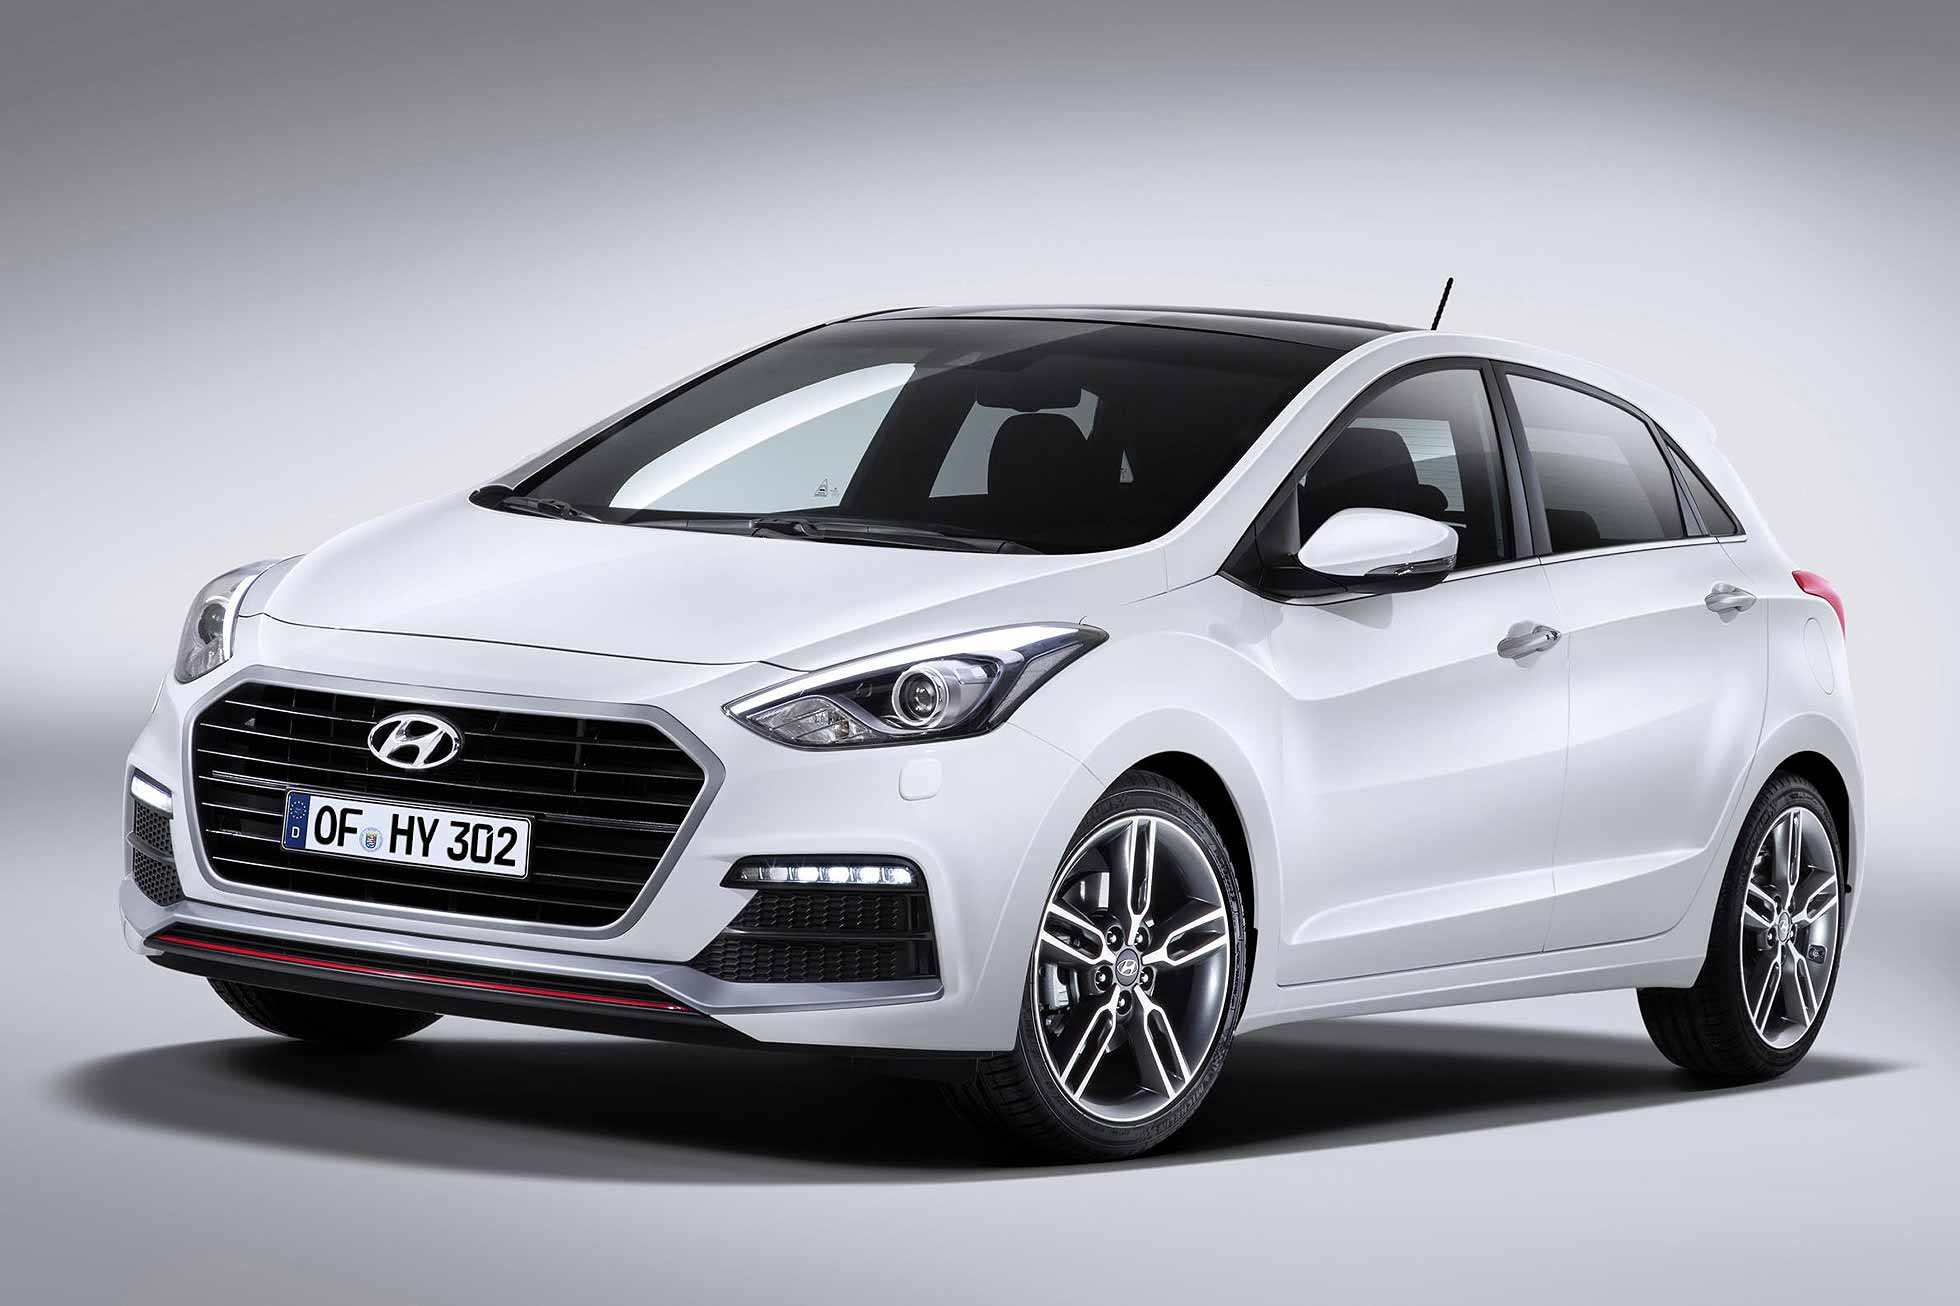 new hyundai i30 turbo heads facelifted 2015 range. Black Bedroom Furniture Sets. Home Design Ideas